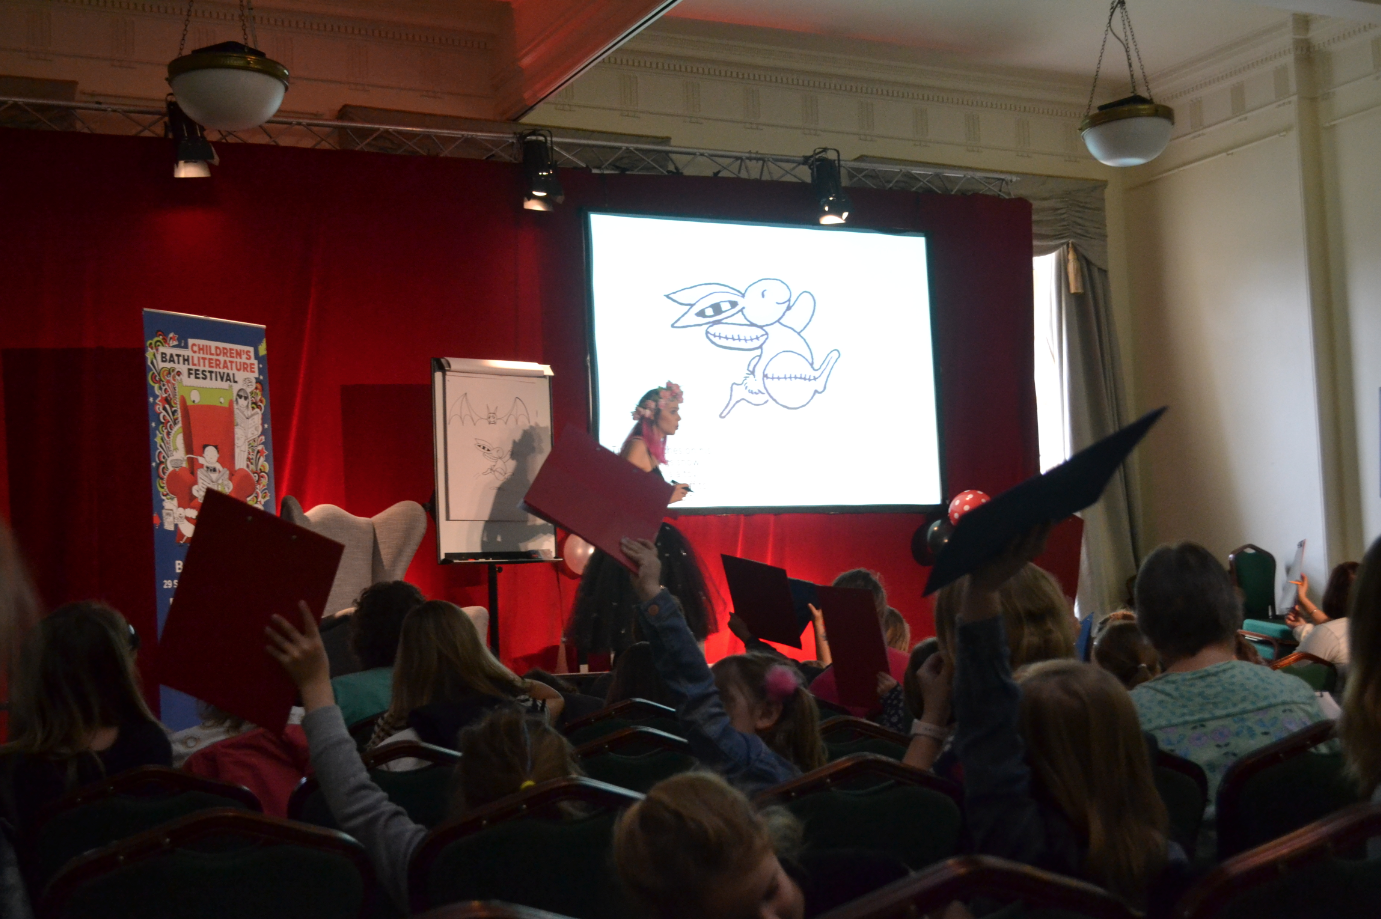 Harriet Muncaster performing an Isadora Moon event at Bath Children's Literature Festival